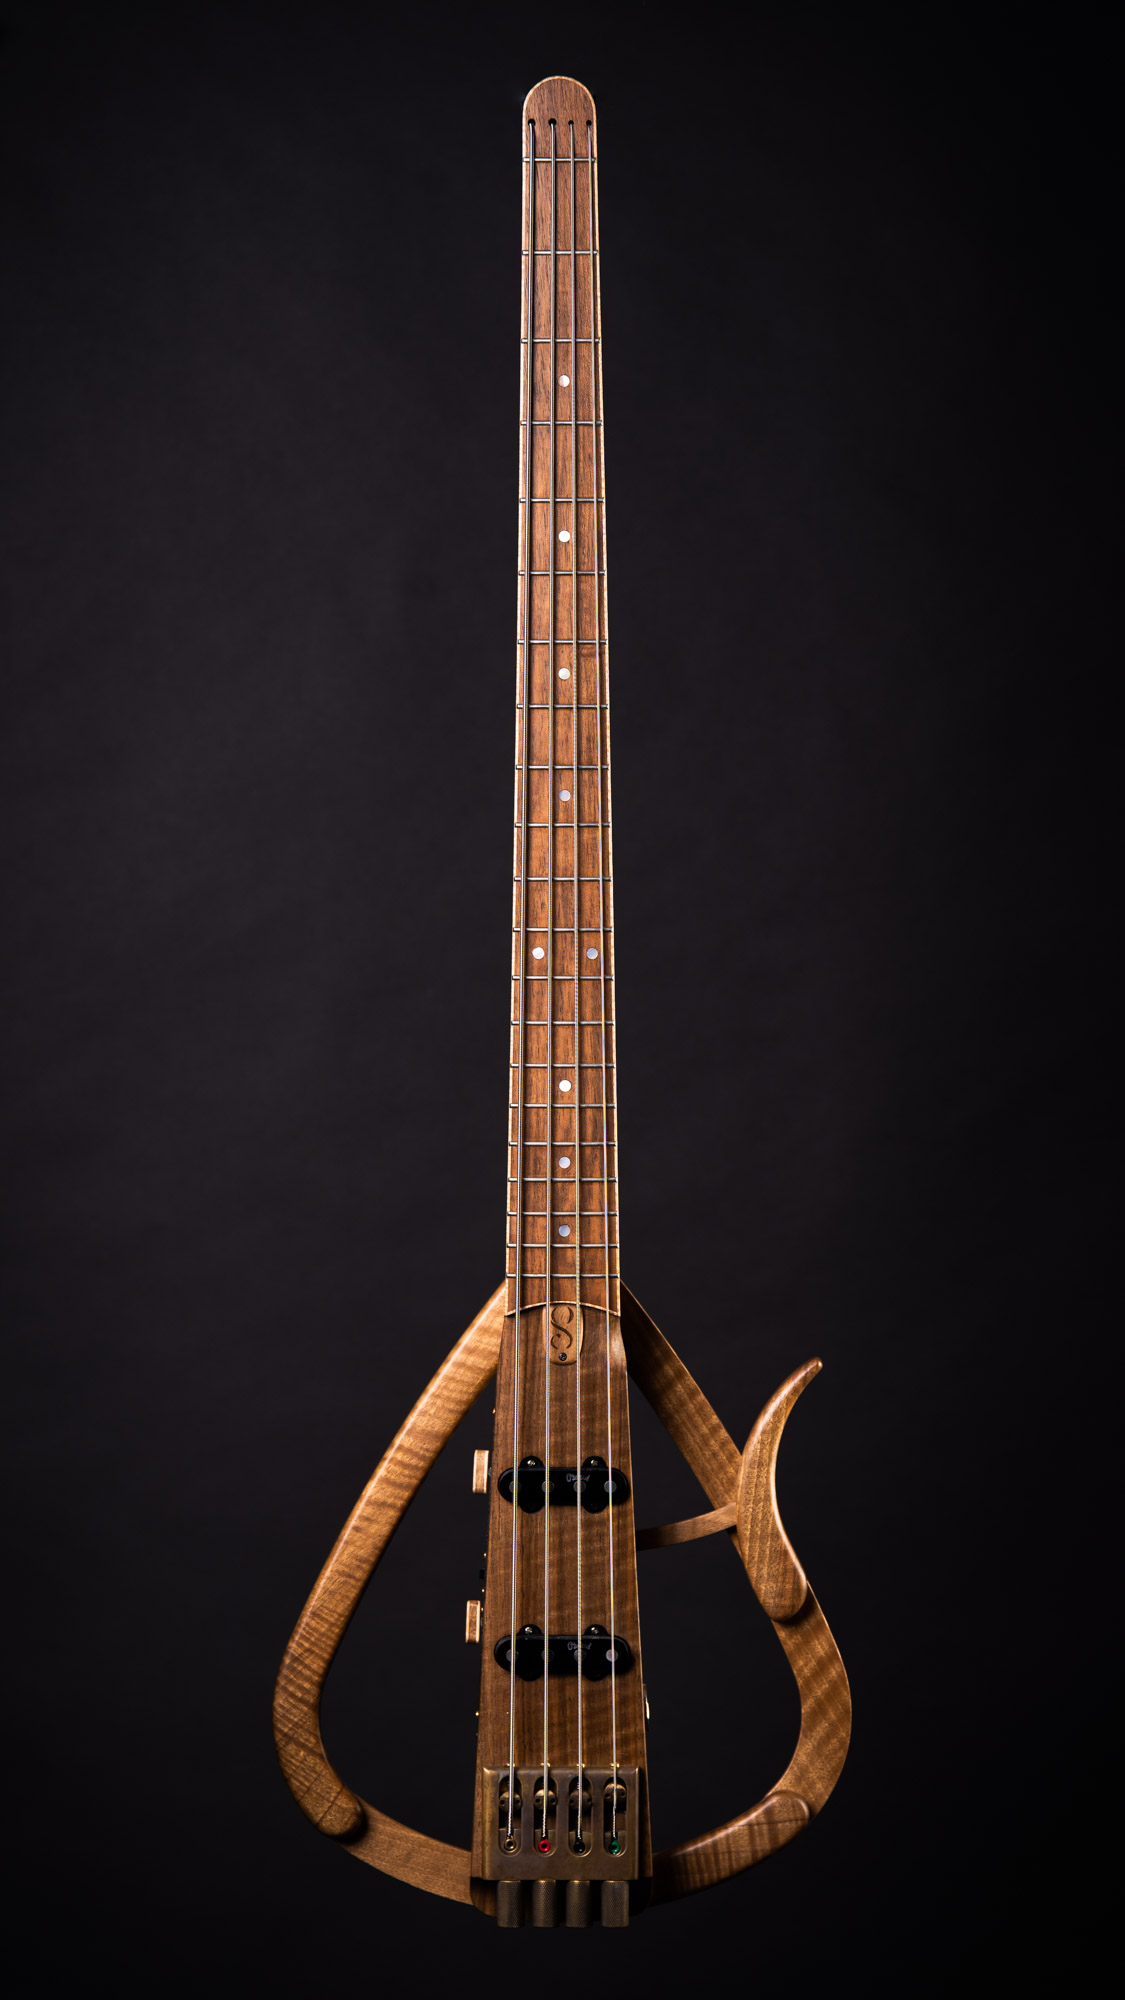 basse de voyage- dragonfly- travel bass